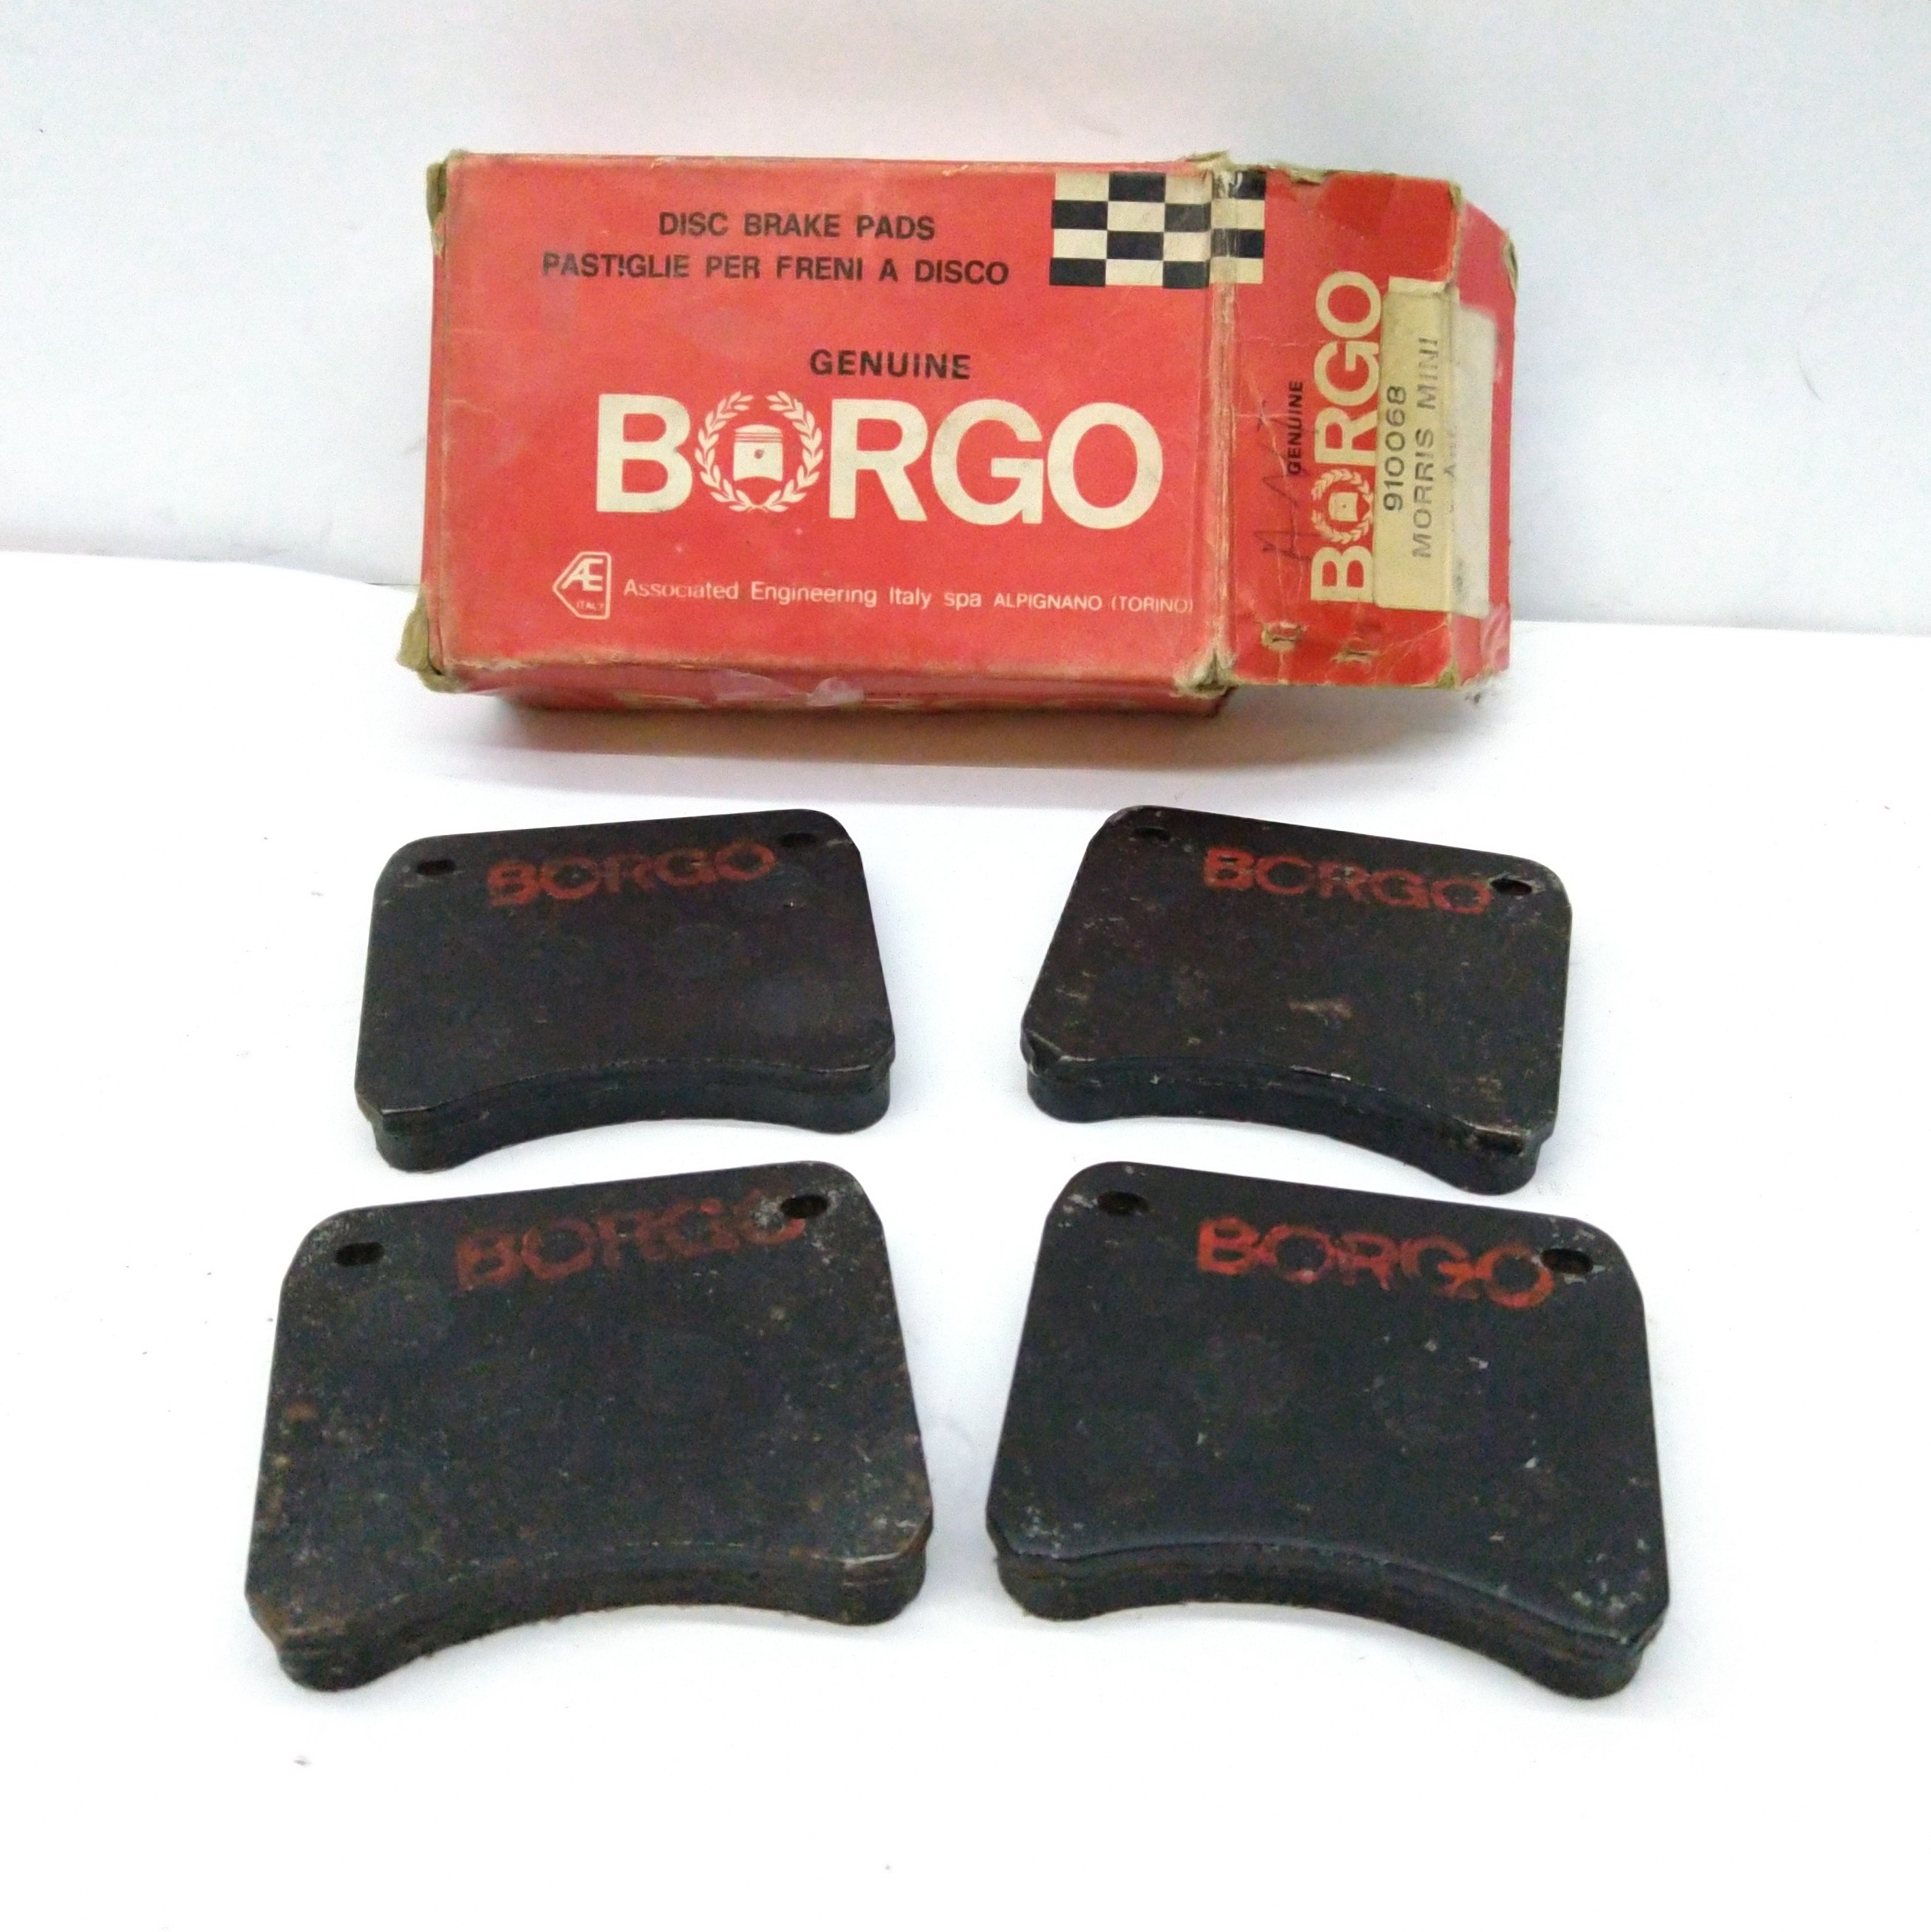 MORRIS MINI BORGO 910068 FRONT BRAKE PADS KIT